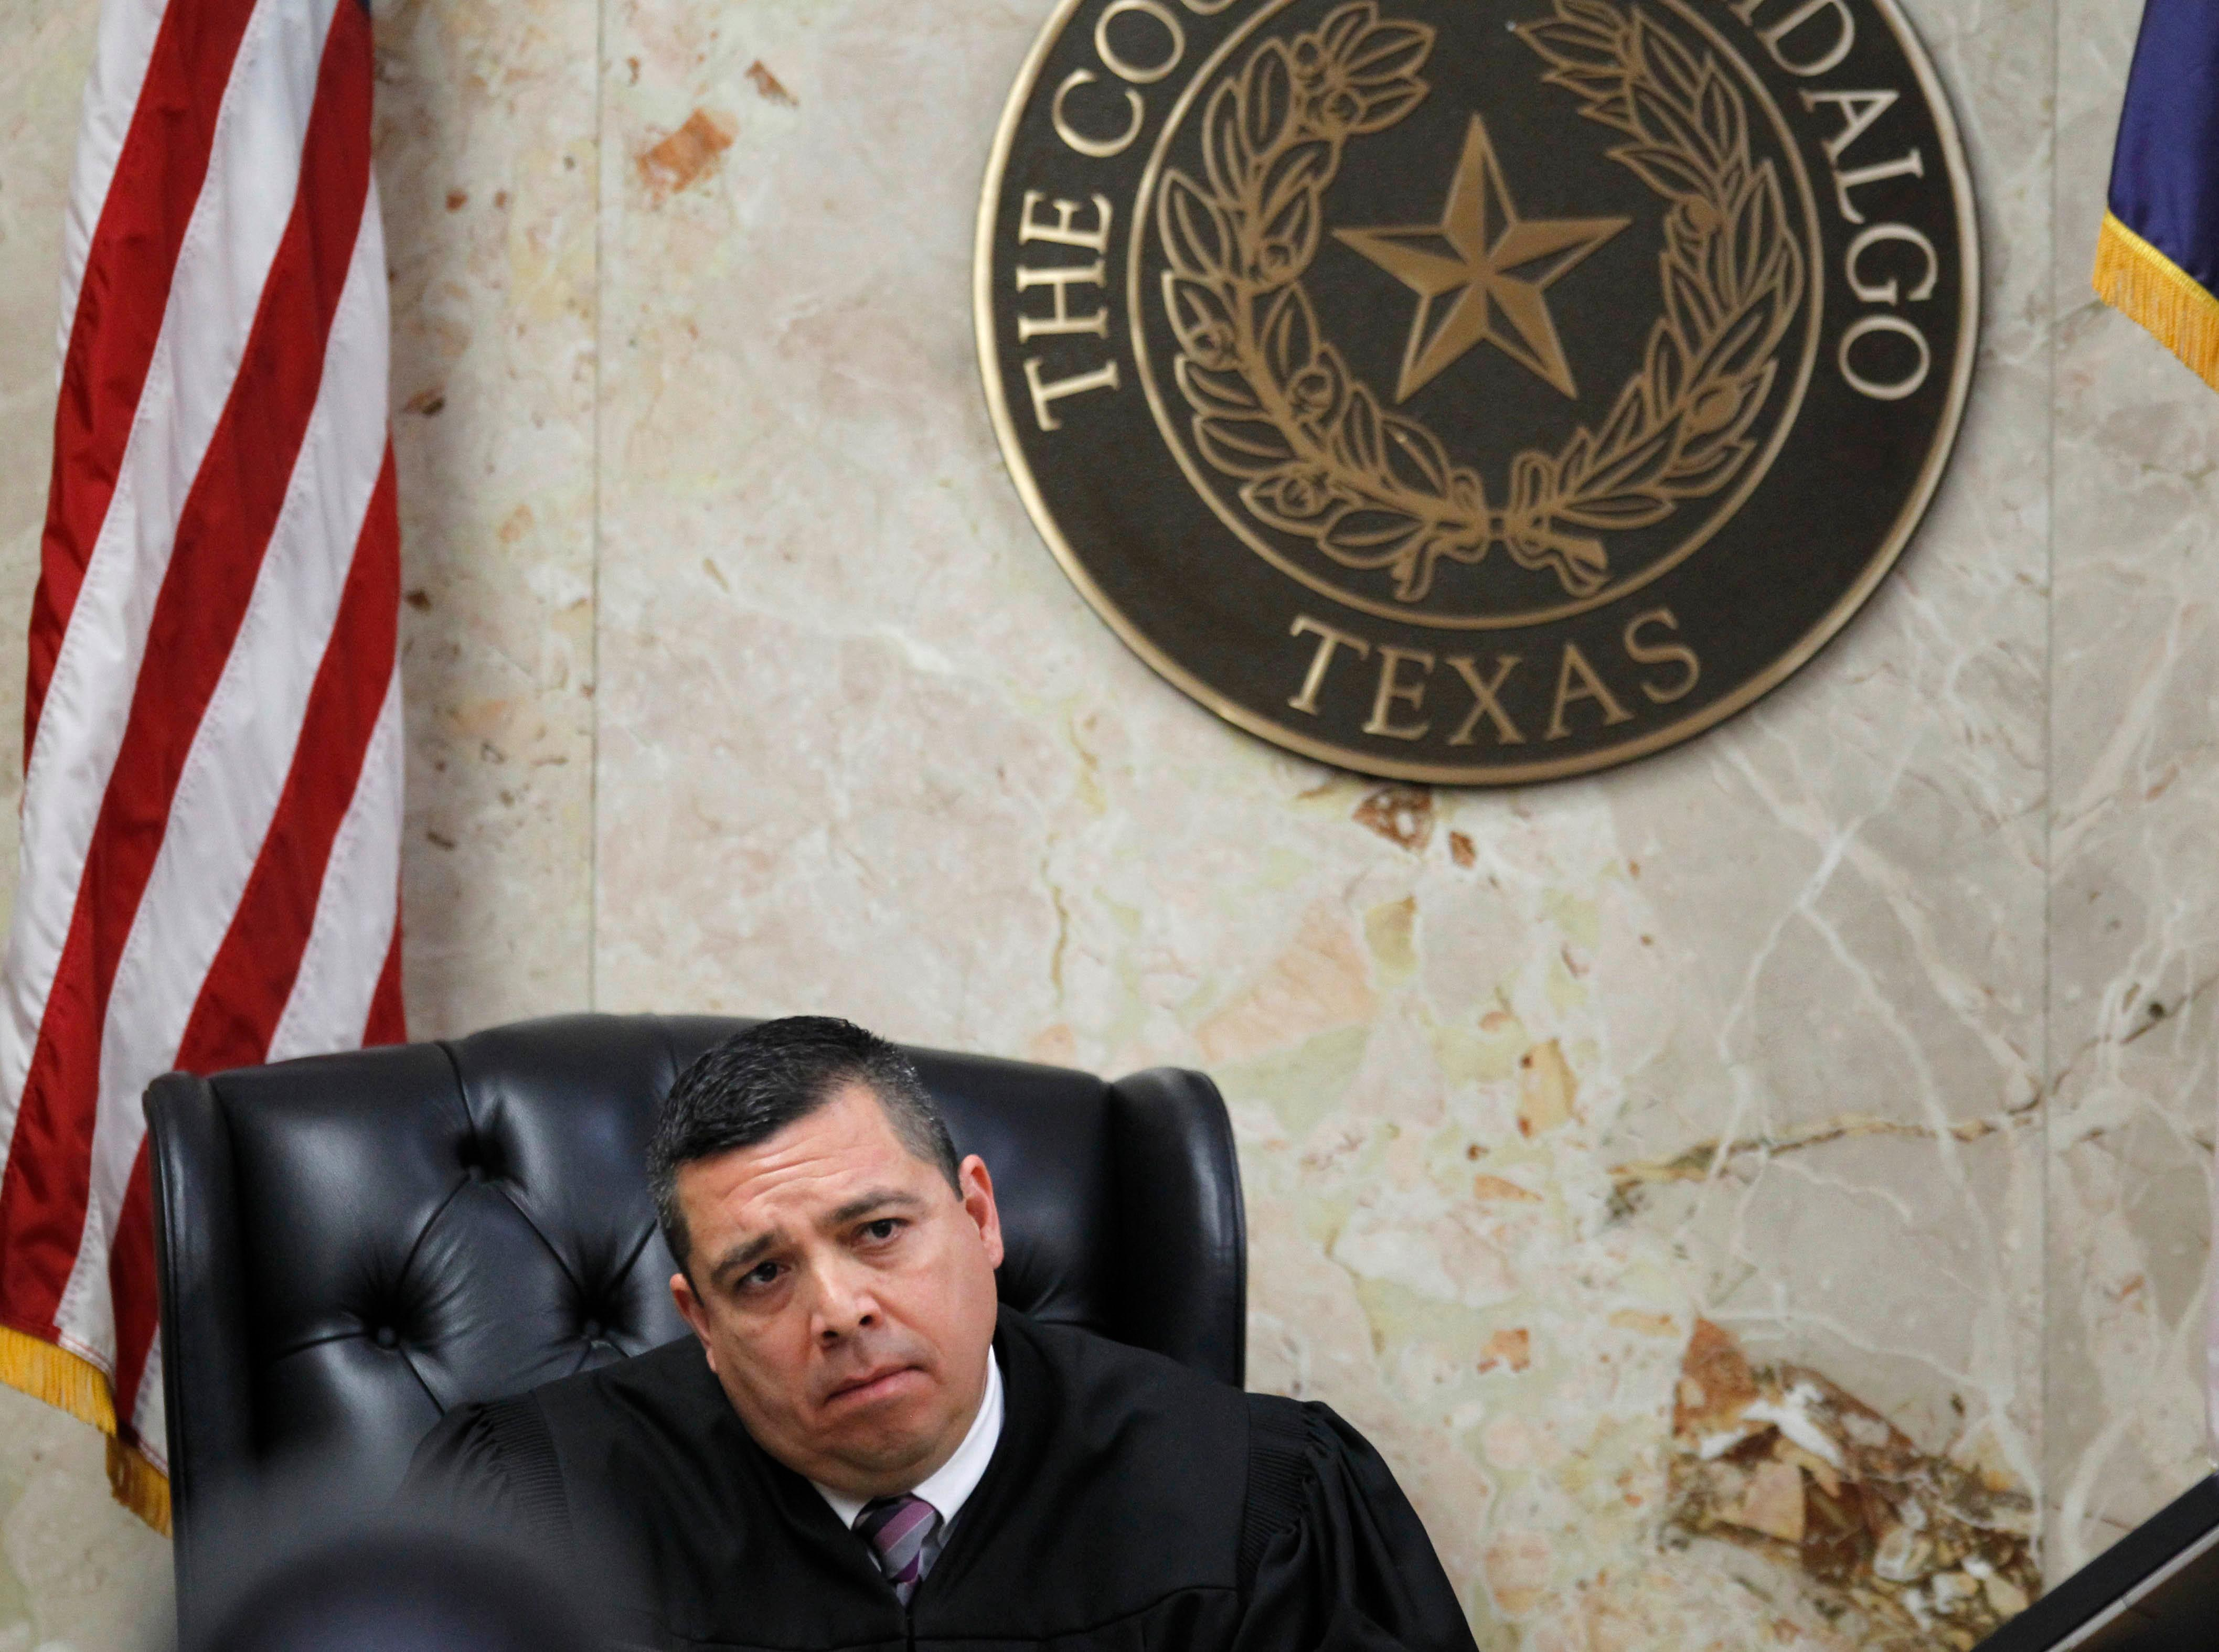 92nd state District Court Judge Luis Singleterry listens to closing arguments during John Bernard Feit's trial for the 1960 murder of Irene Garza Thursday, December 7, 2017, at the Hidalgo County Courthouse in Edinburg. (Nathan Lambrecht/The Monitor/Pool)